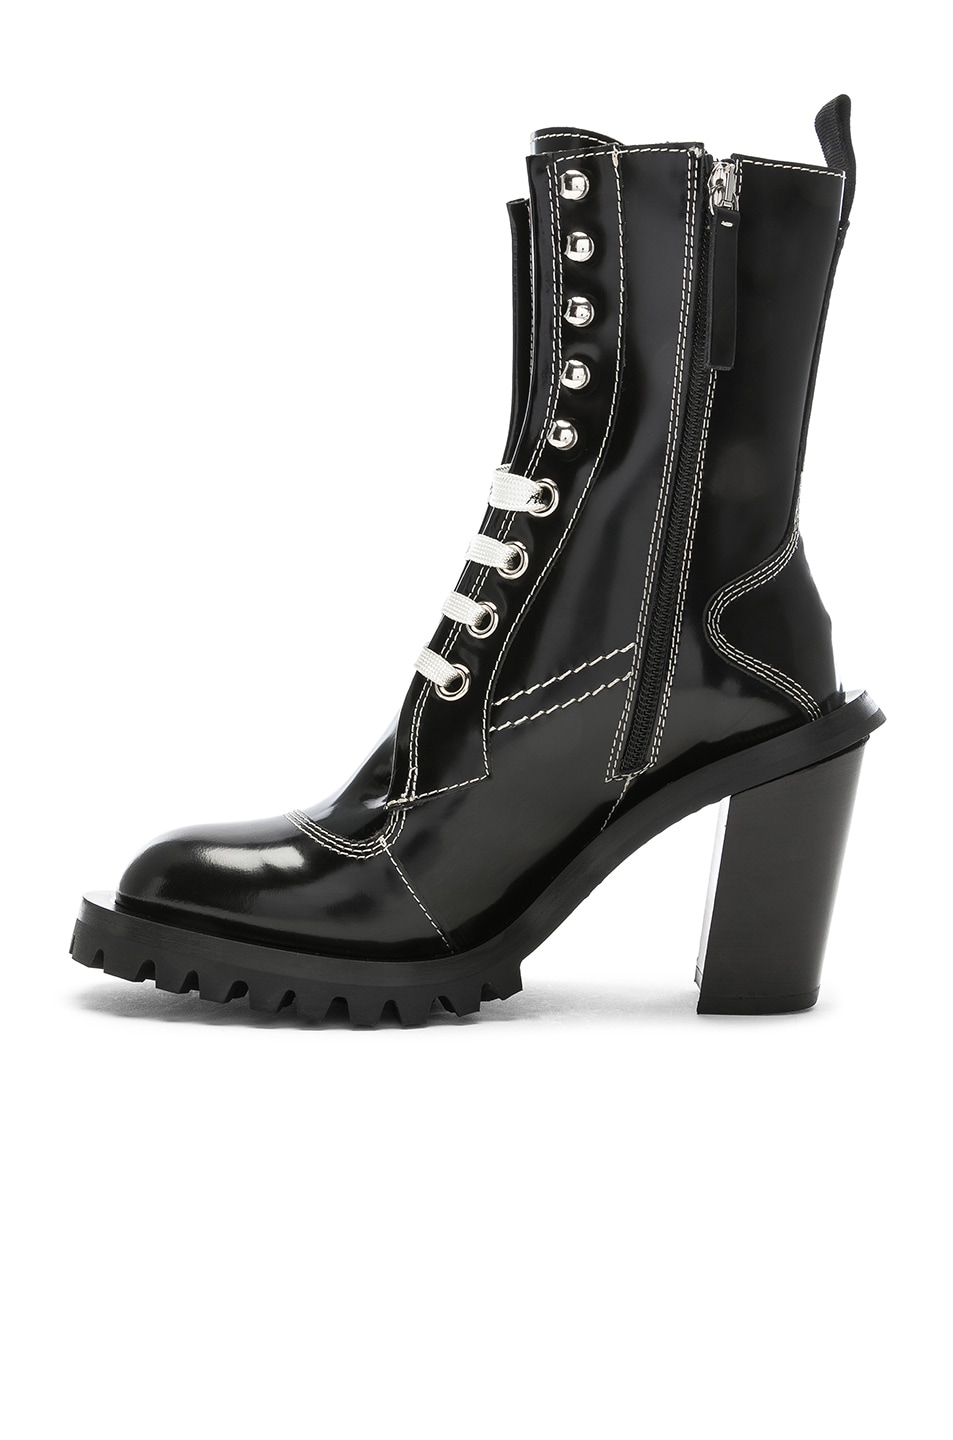 Image 5 of Acne Studios Leather Lace Up Boots in Black